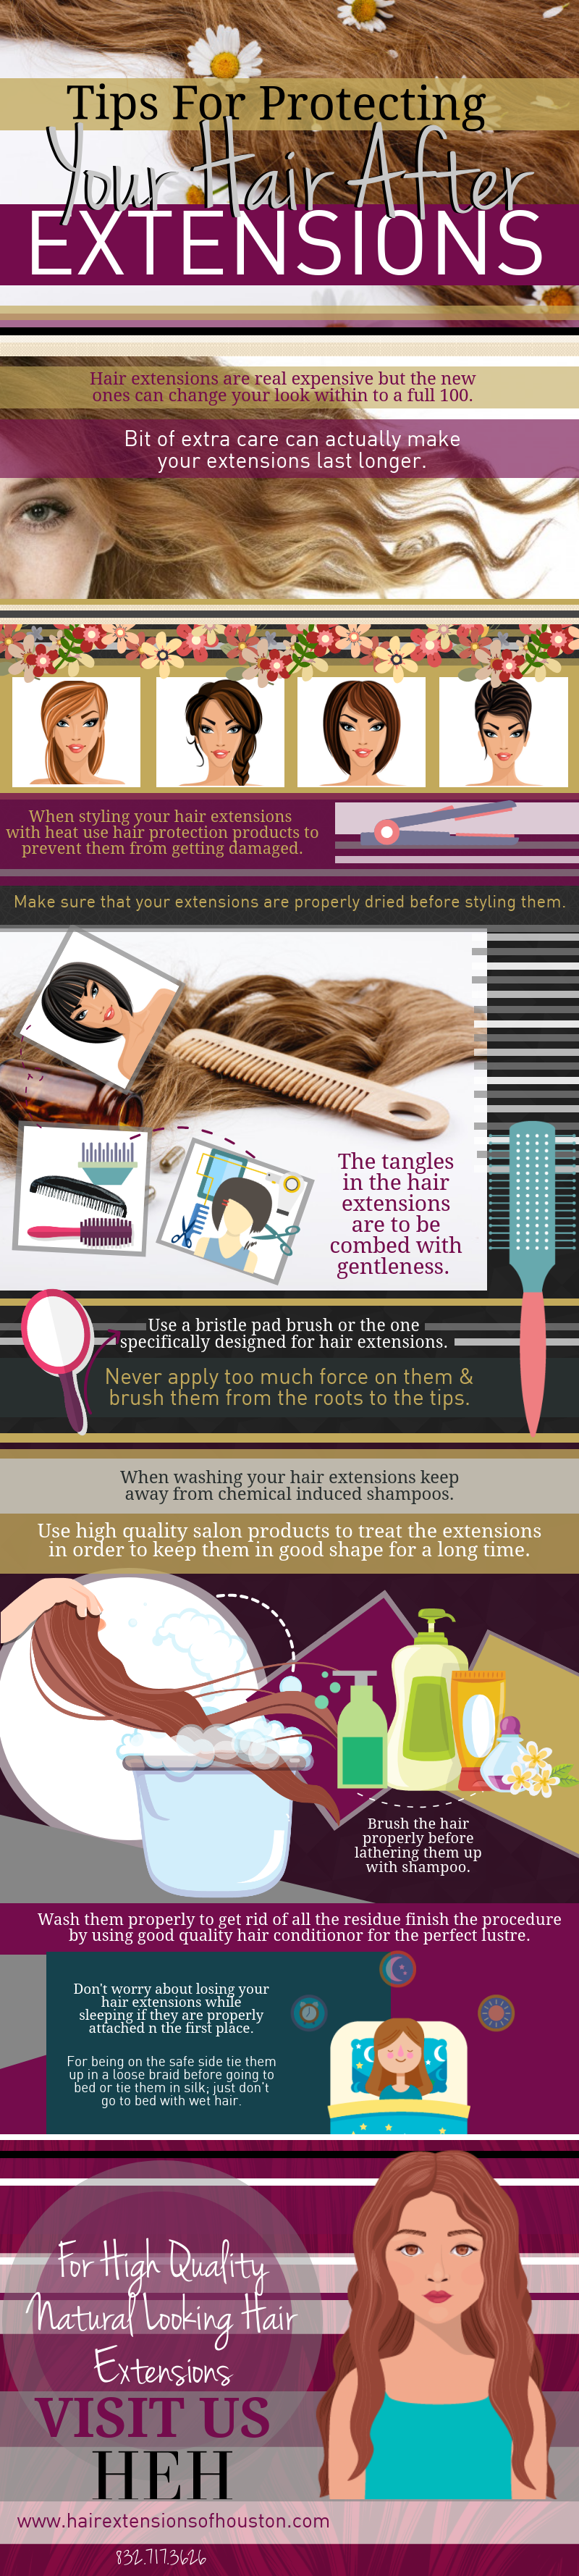 Tips for Protecting Your Hair After Extensions